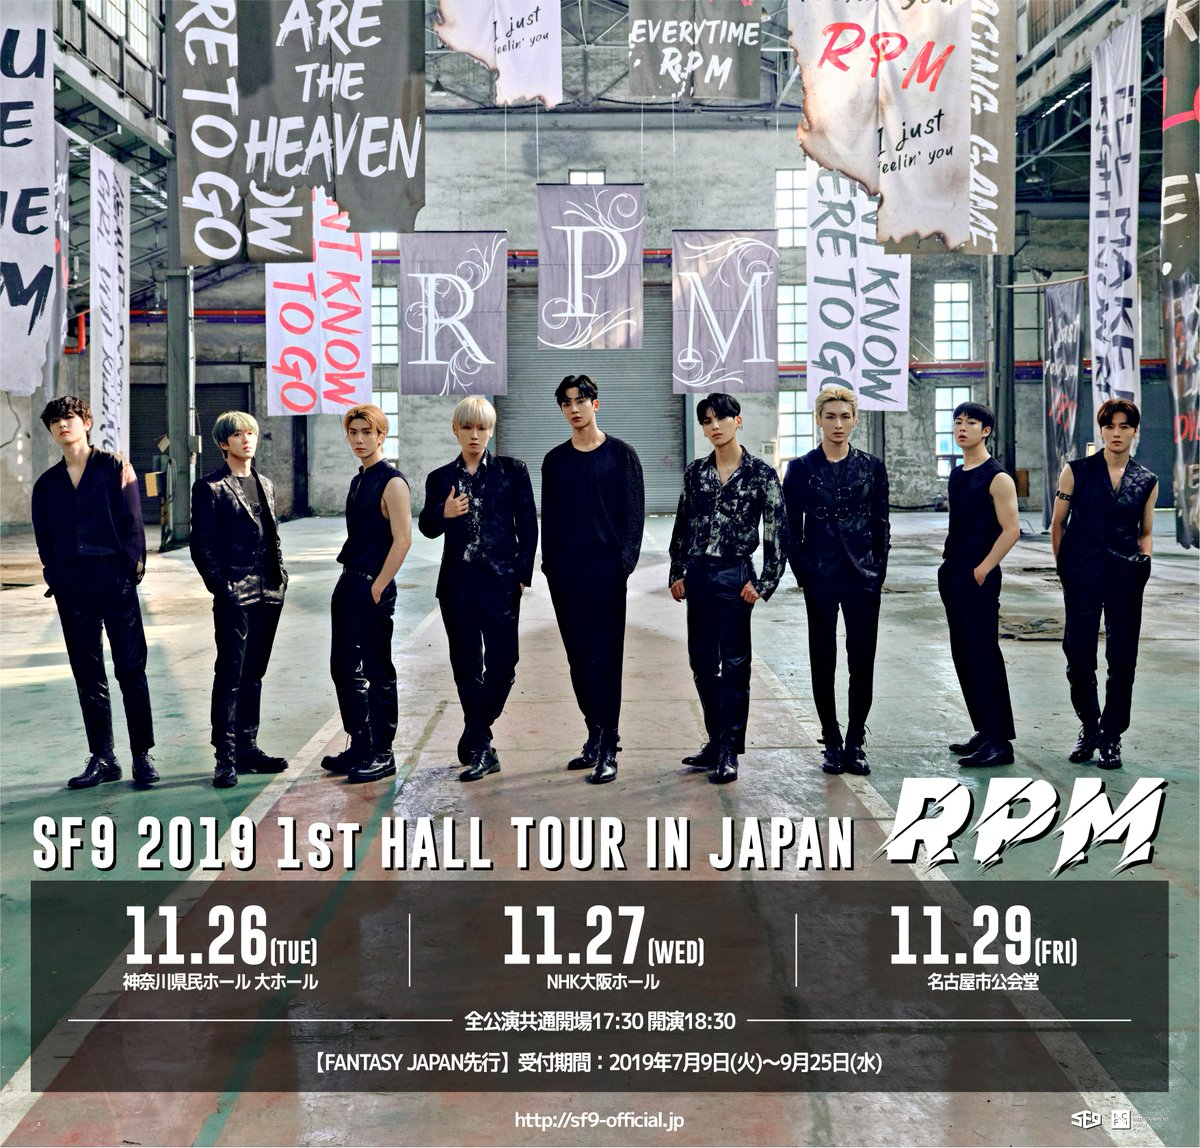 SF9 2019 1st Hall Tour in Japan - RPM -